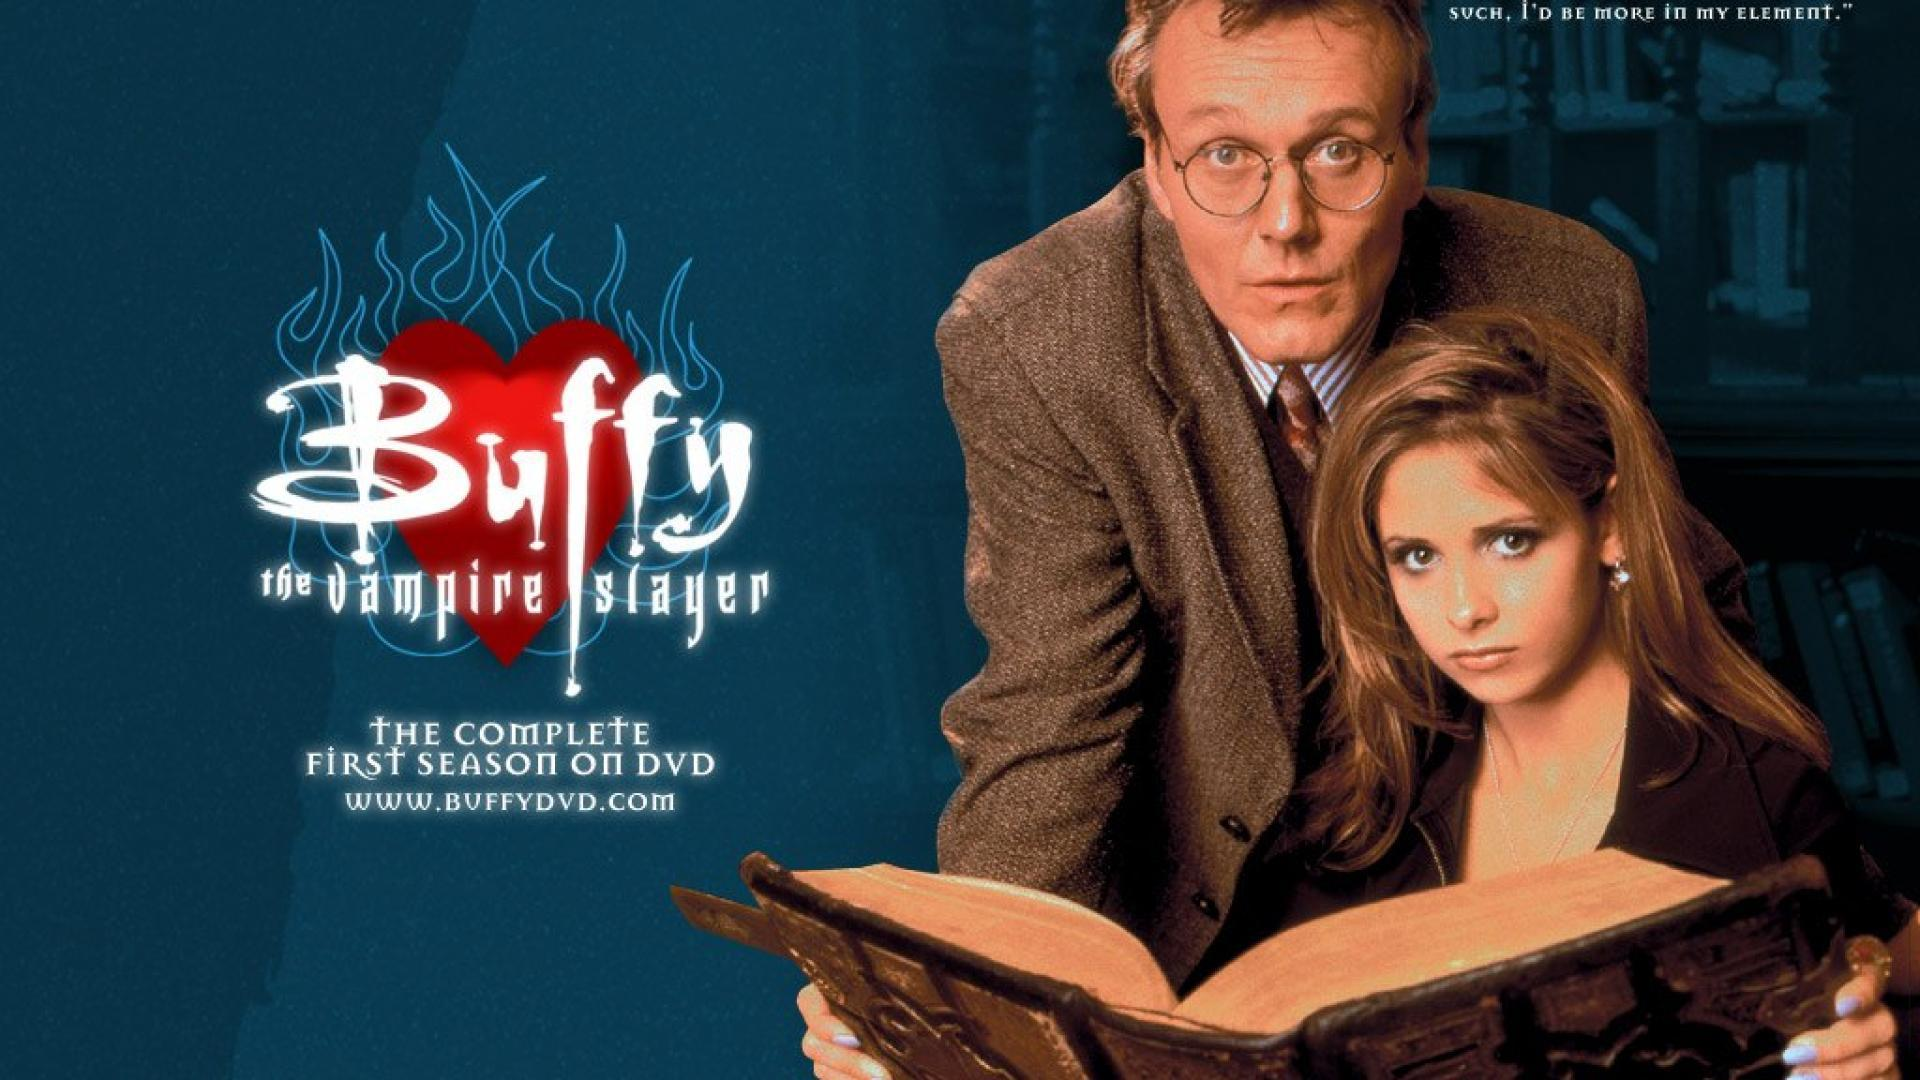 anthony head in buffy the vampire slayer tv series hd wallpaper ...